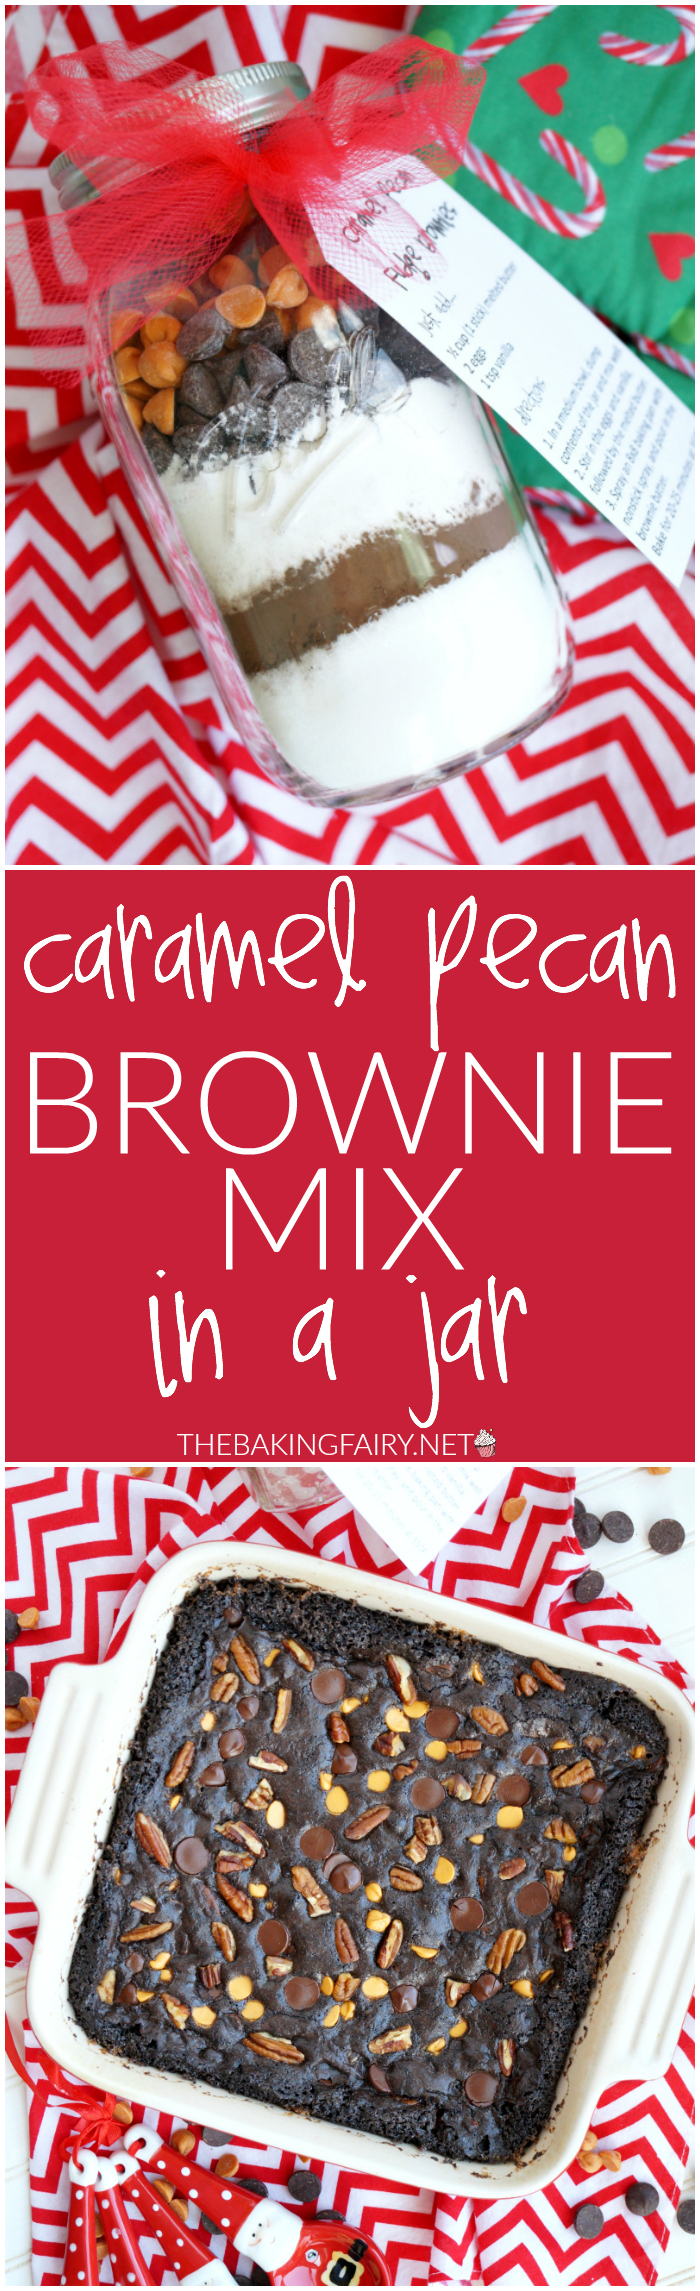 homemade gifts: caramel pecan brownie mix in a jar | The Baking Fairy